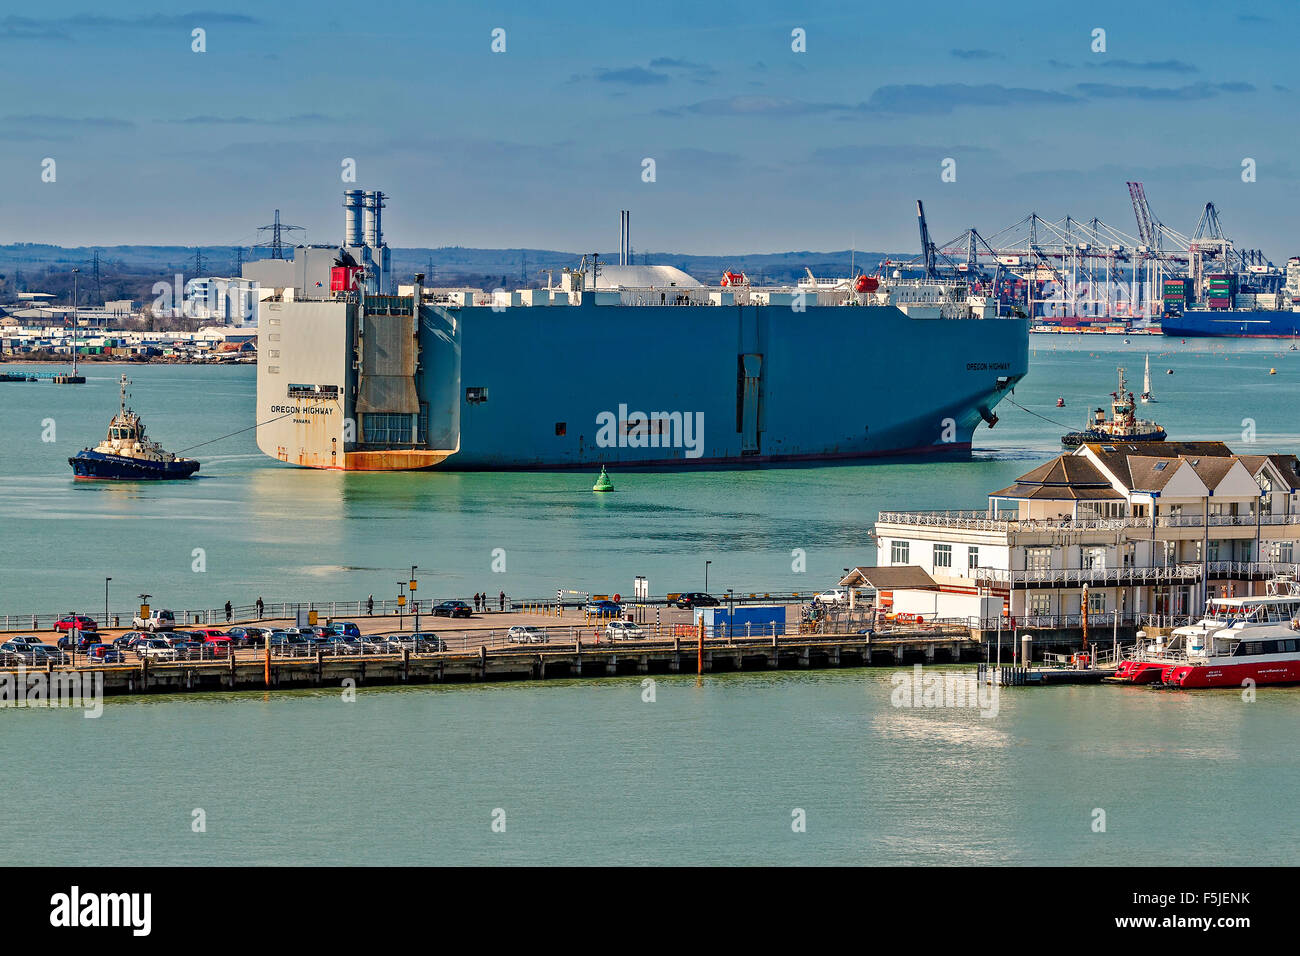 Vehicle carrier Under Tow Southampton UK - Stock Image